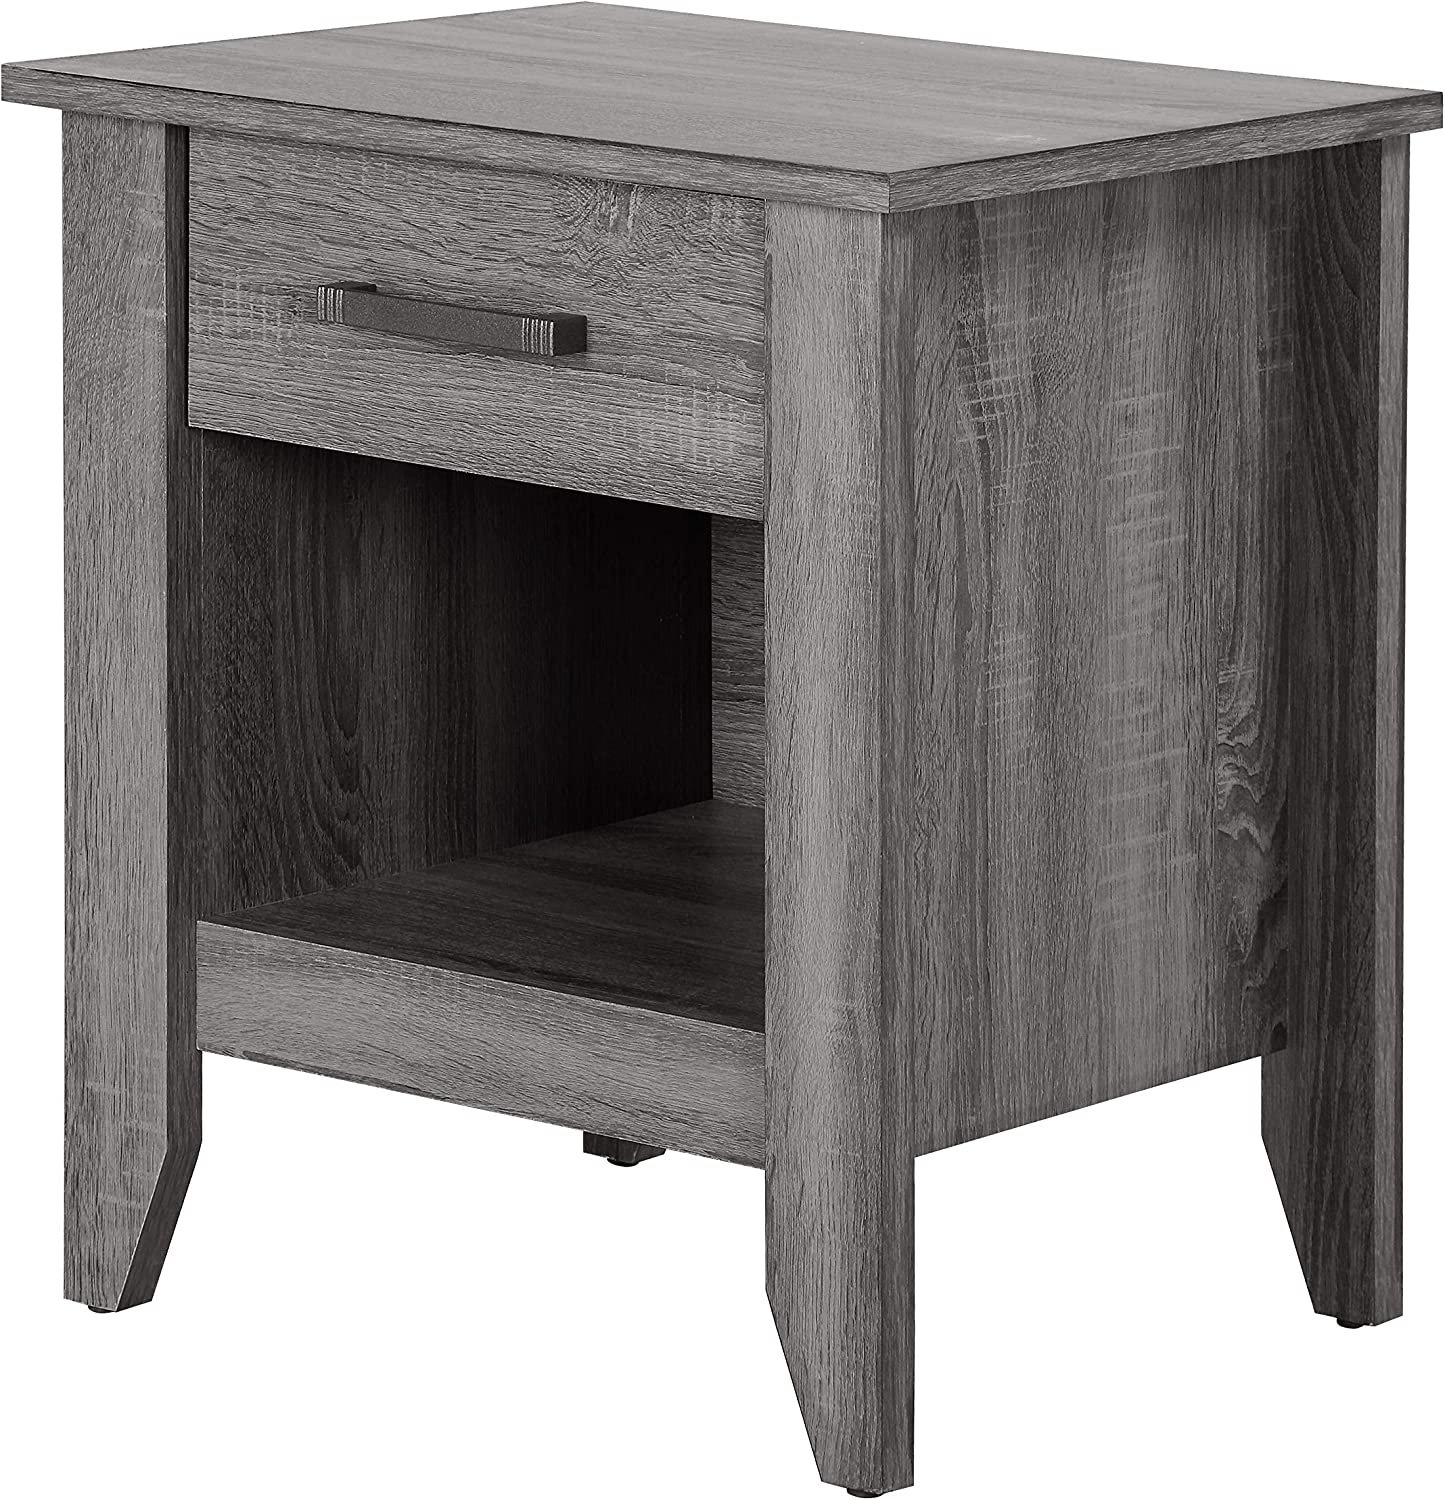 Glory Furniture Lennox , Black Nightstand, SIDE TABLE 24 H x 18 W x 21 D